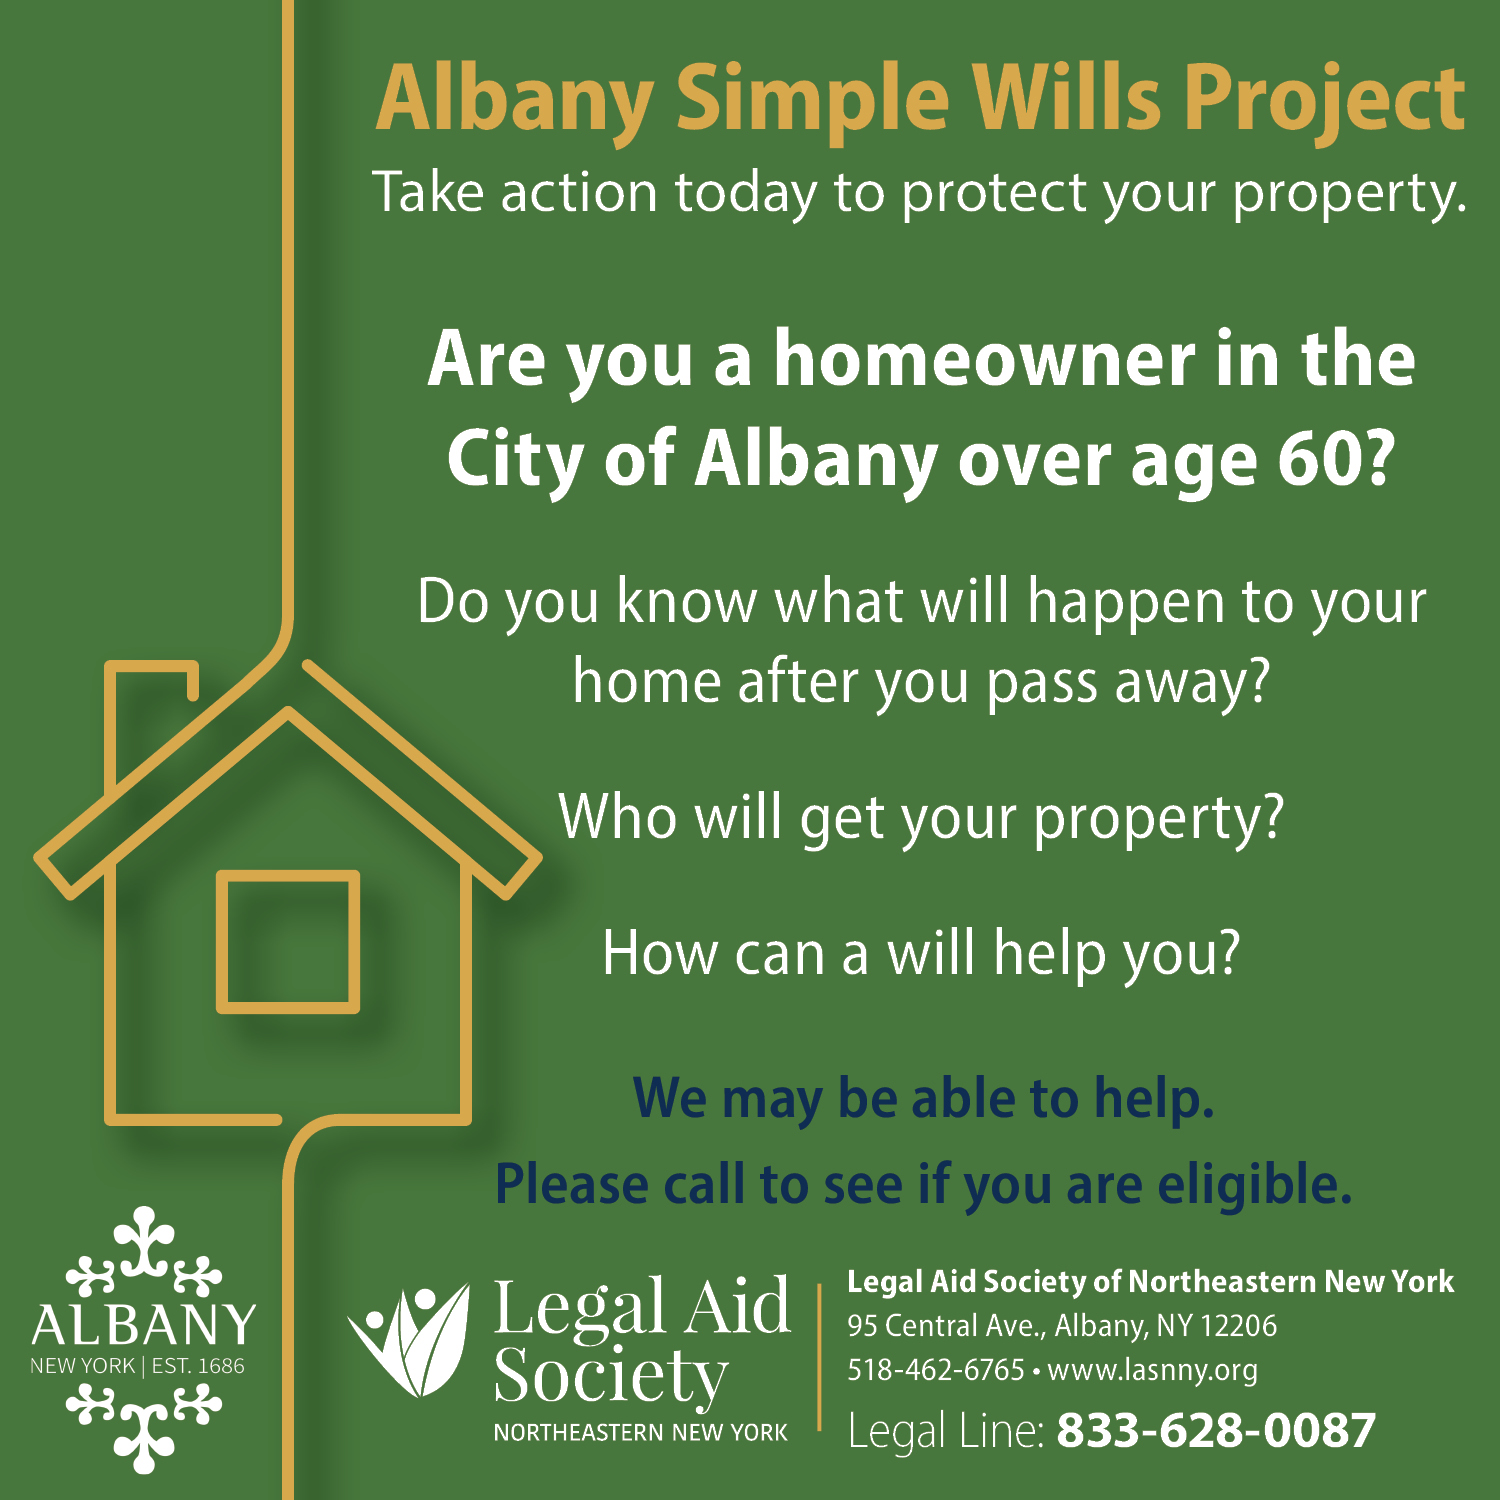 Albany Simple Wills Project